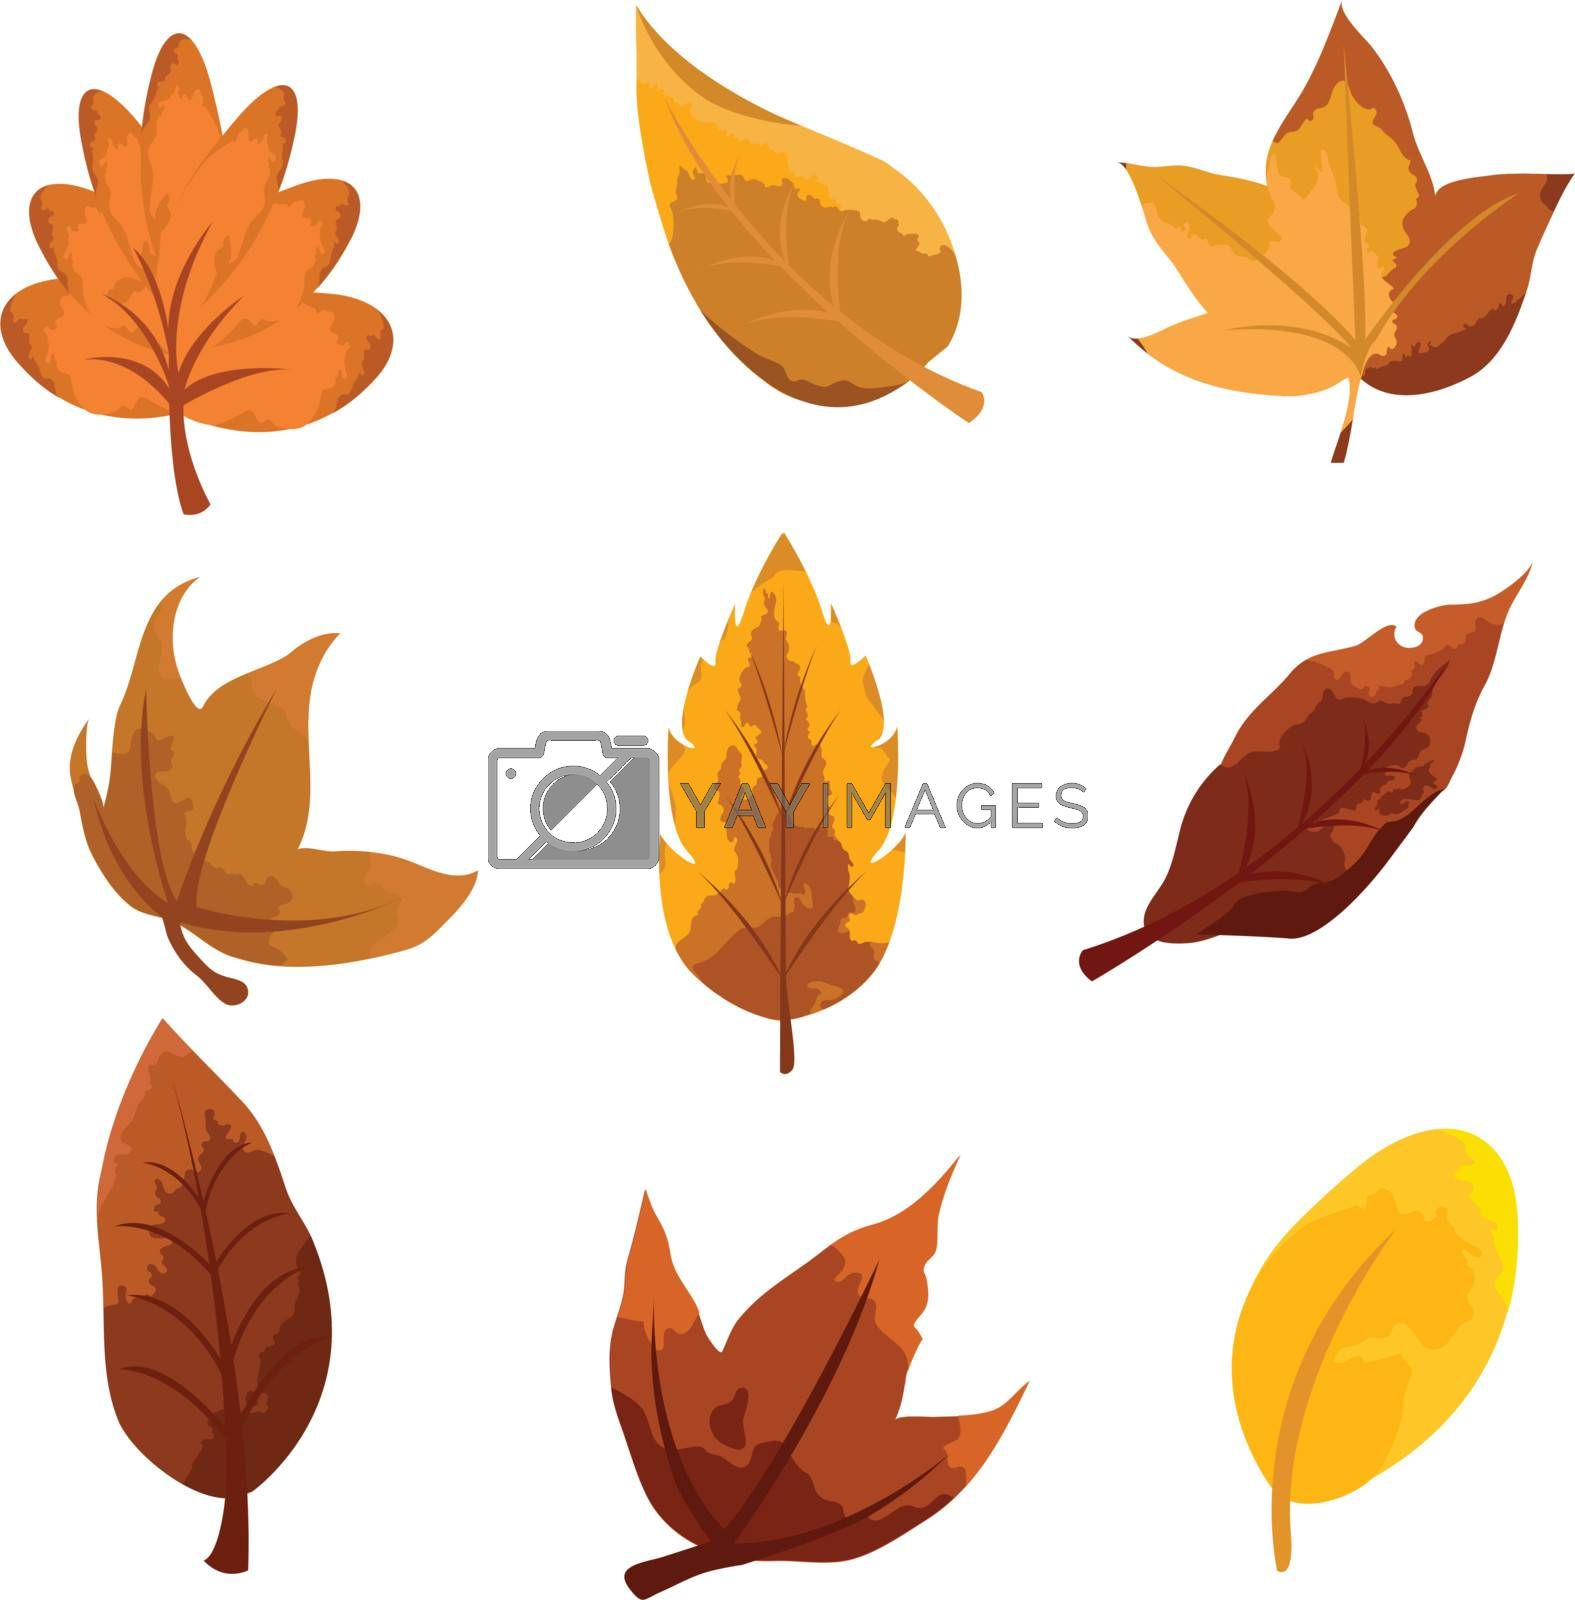 Royalty free image of autumn leaves background by glossygirl21